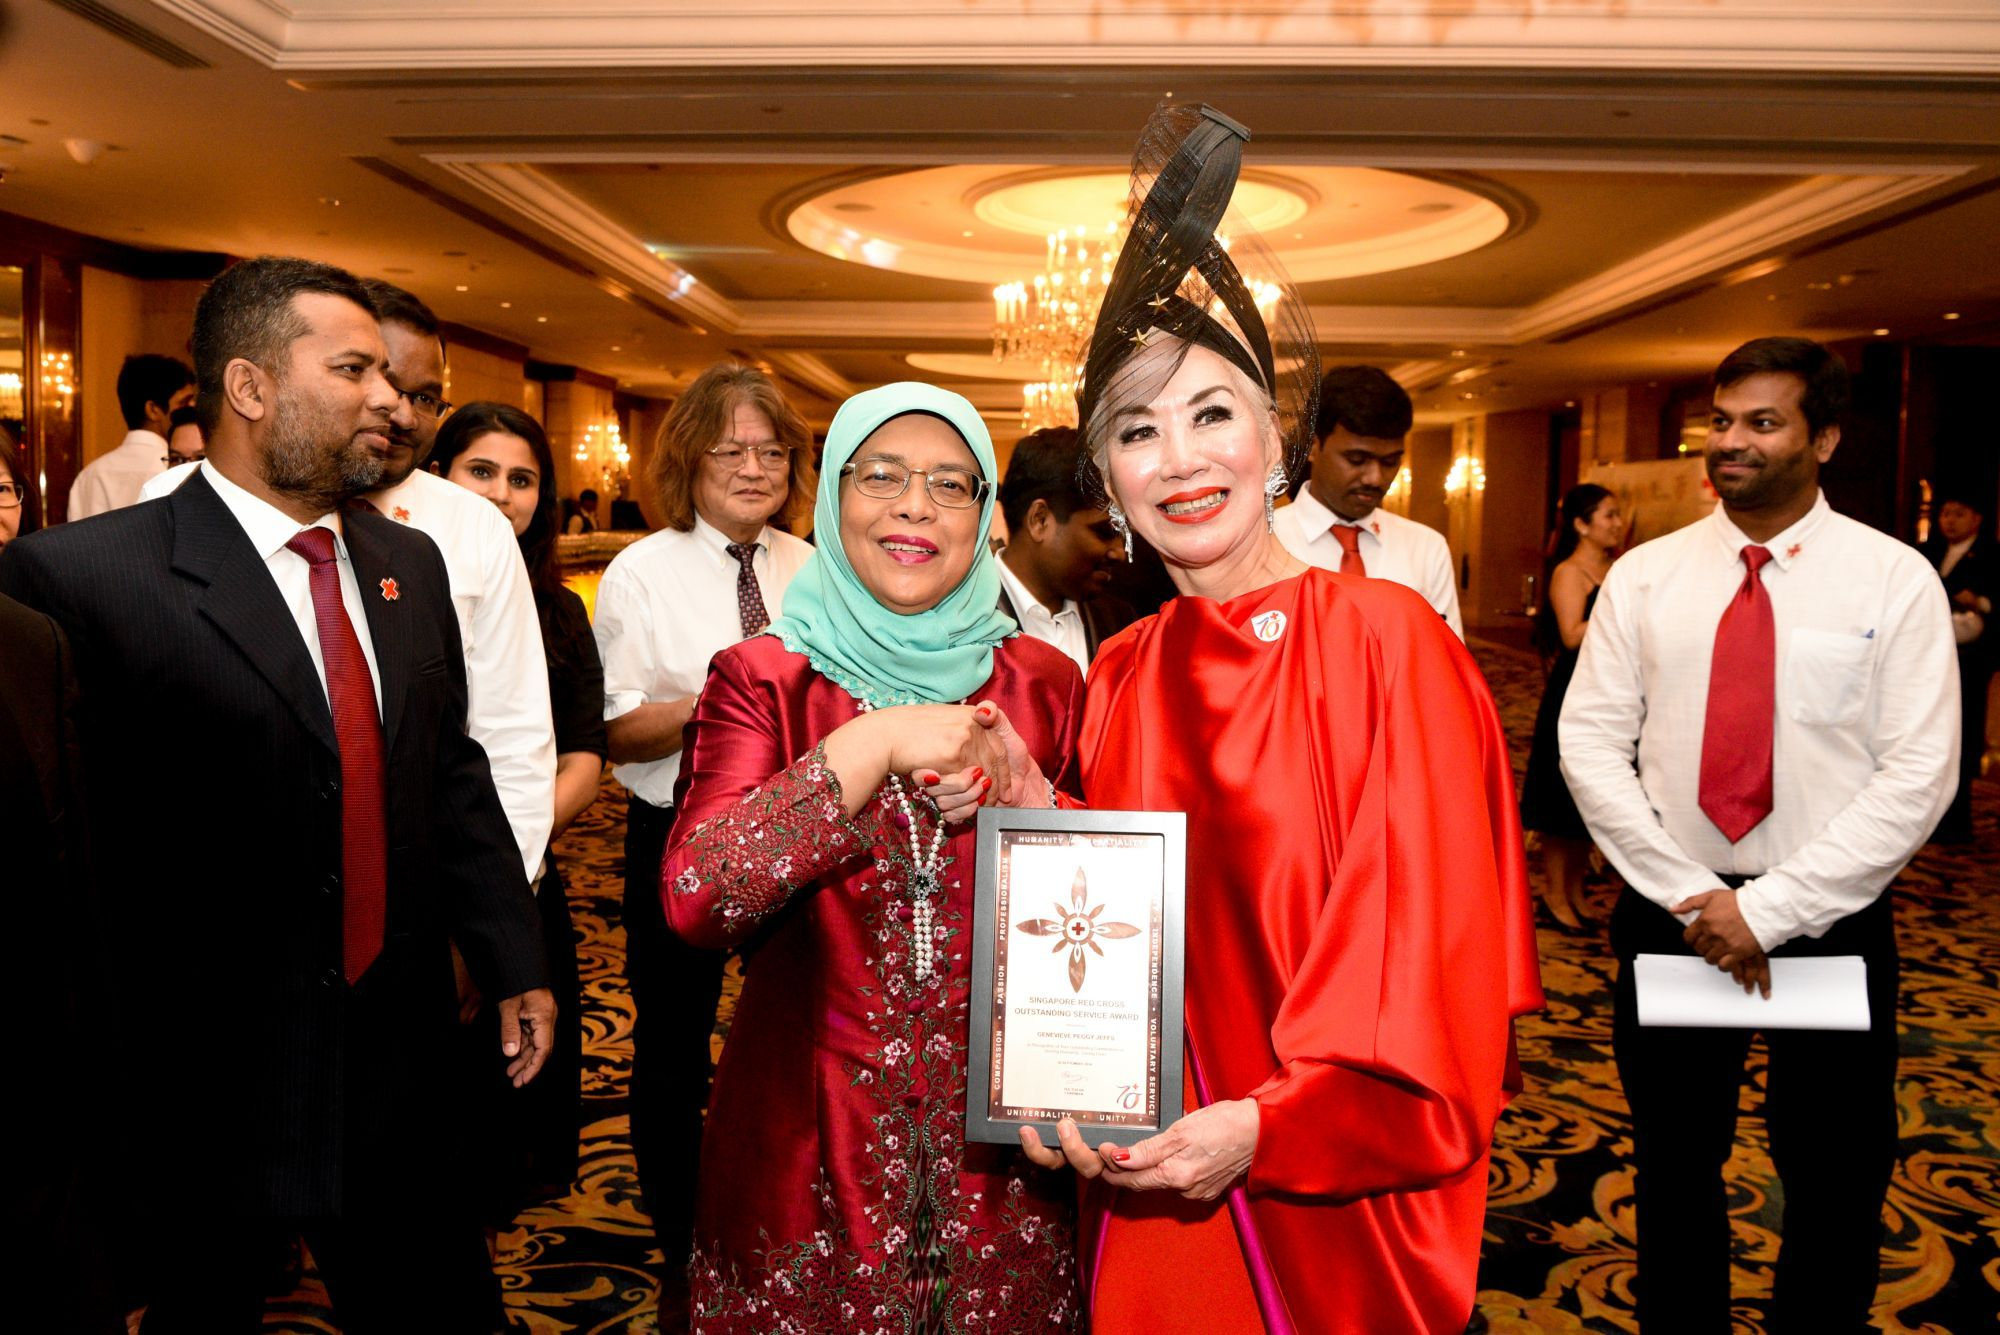 How Relevant are Charity Galas in Singapore, Now that Fundraisers are Held Online?